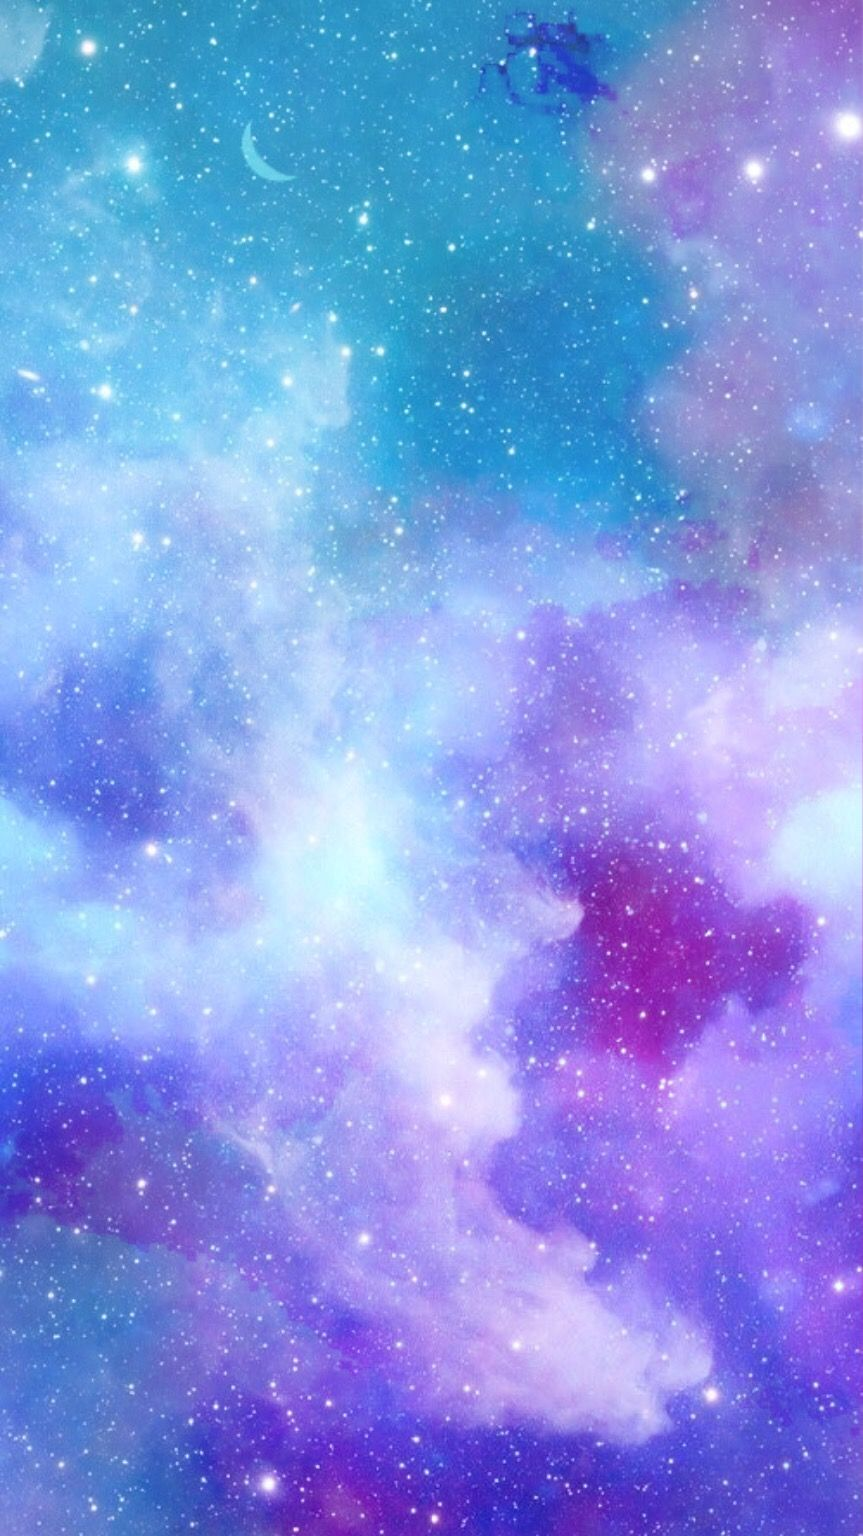 Blue And Pink Galaxy Wallpaper Posted By Christopher Walker